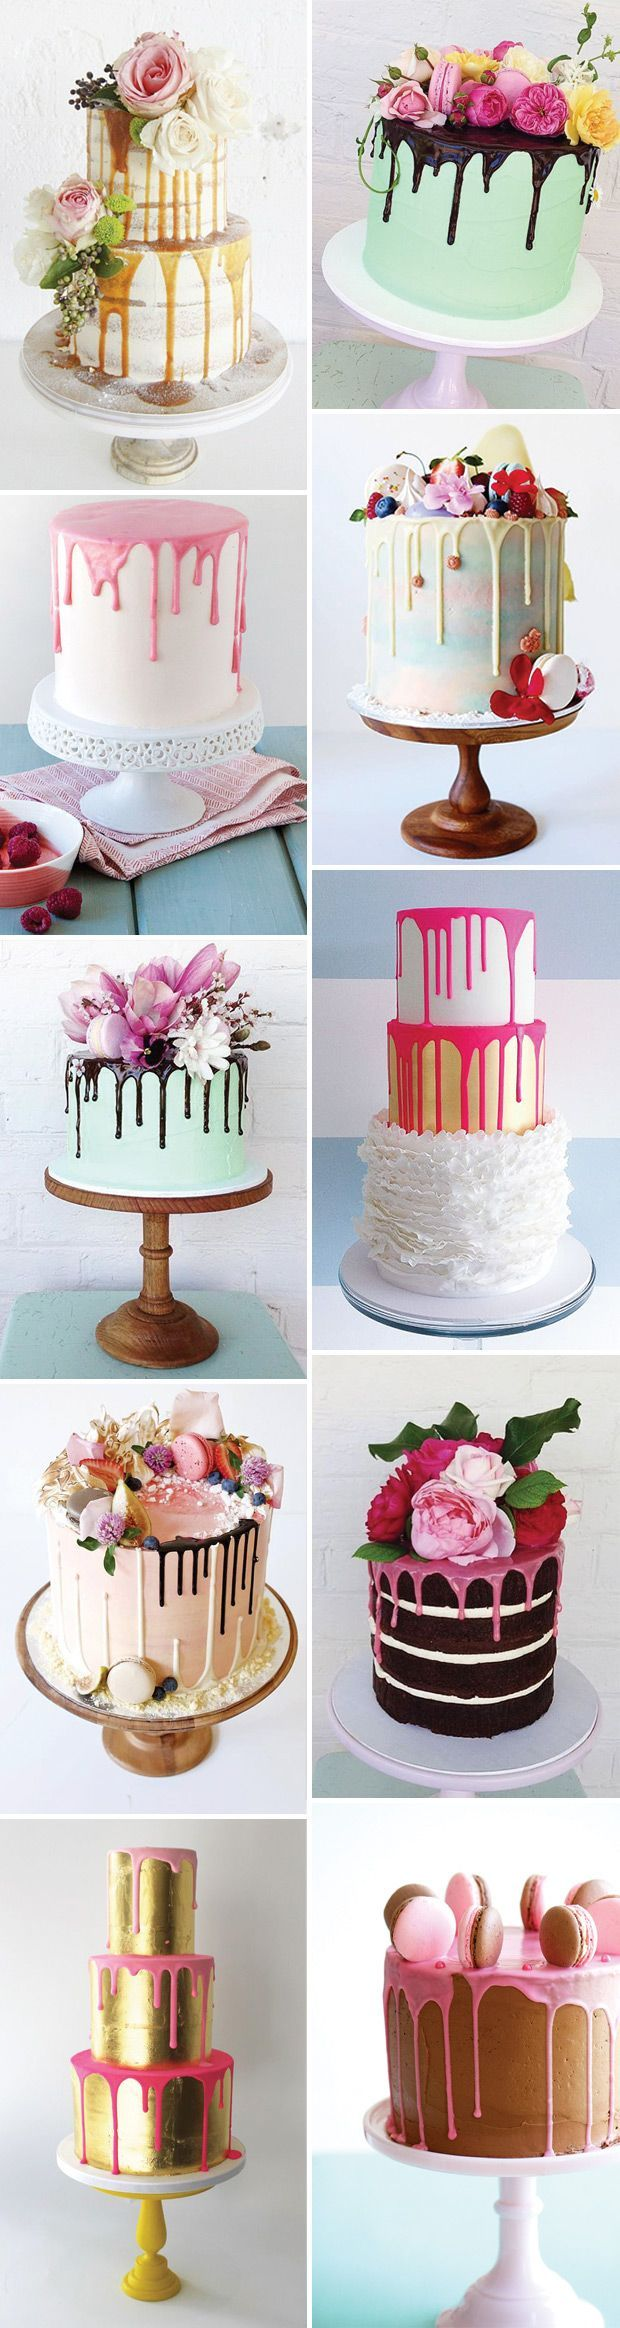 best cakes images on pinterest anniversary cakes birthday